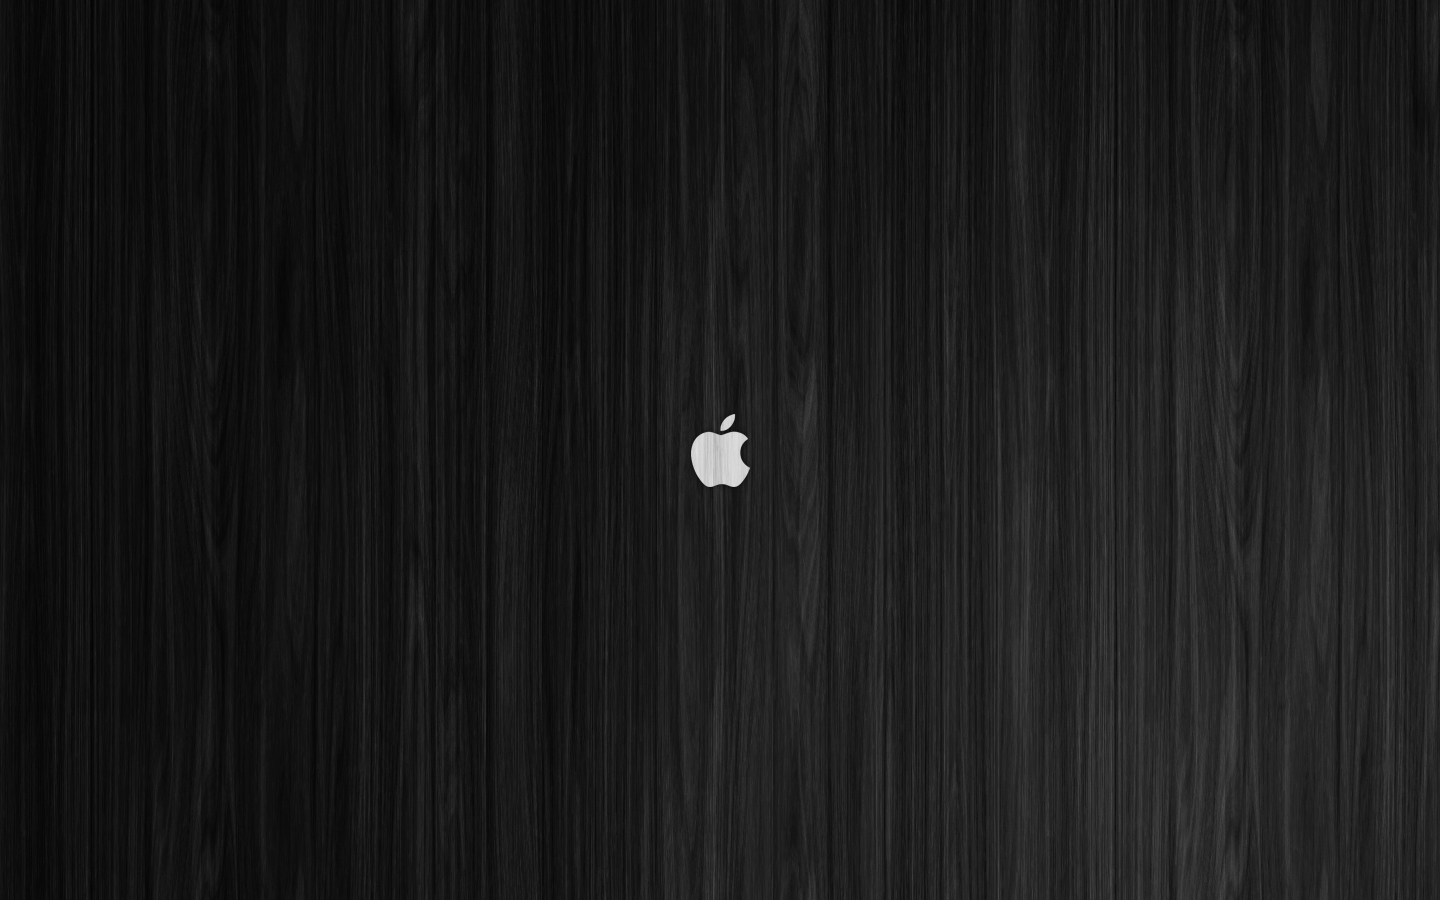 apple wood wallpaper - sf wallpaper